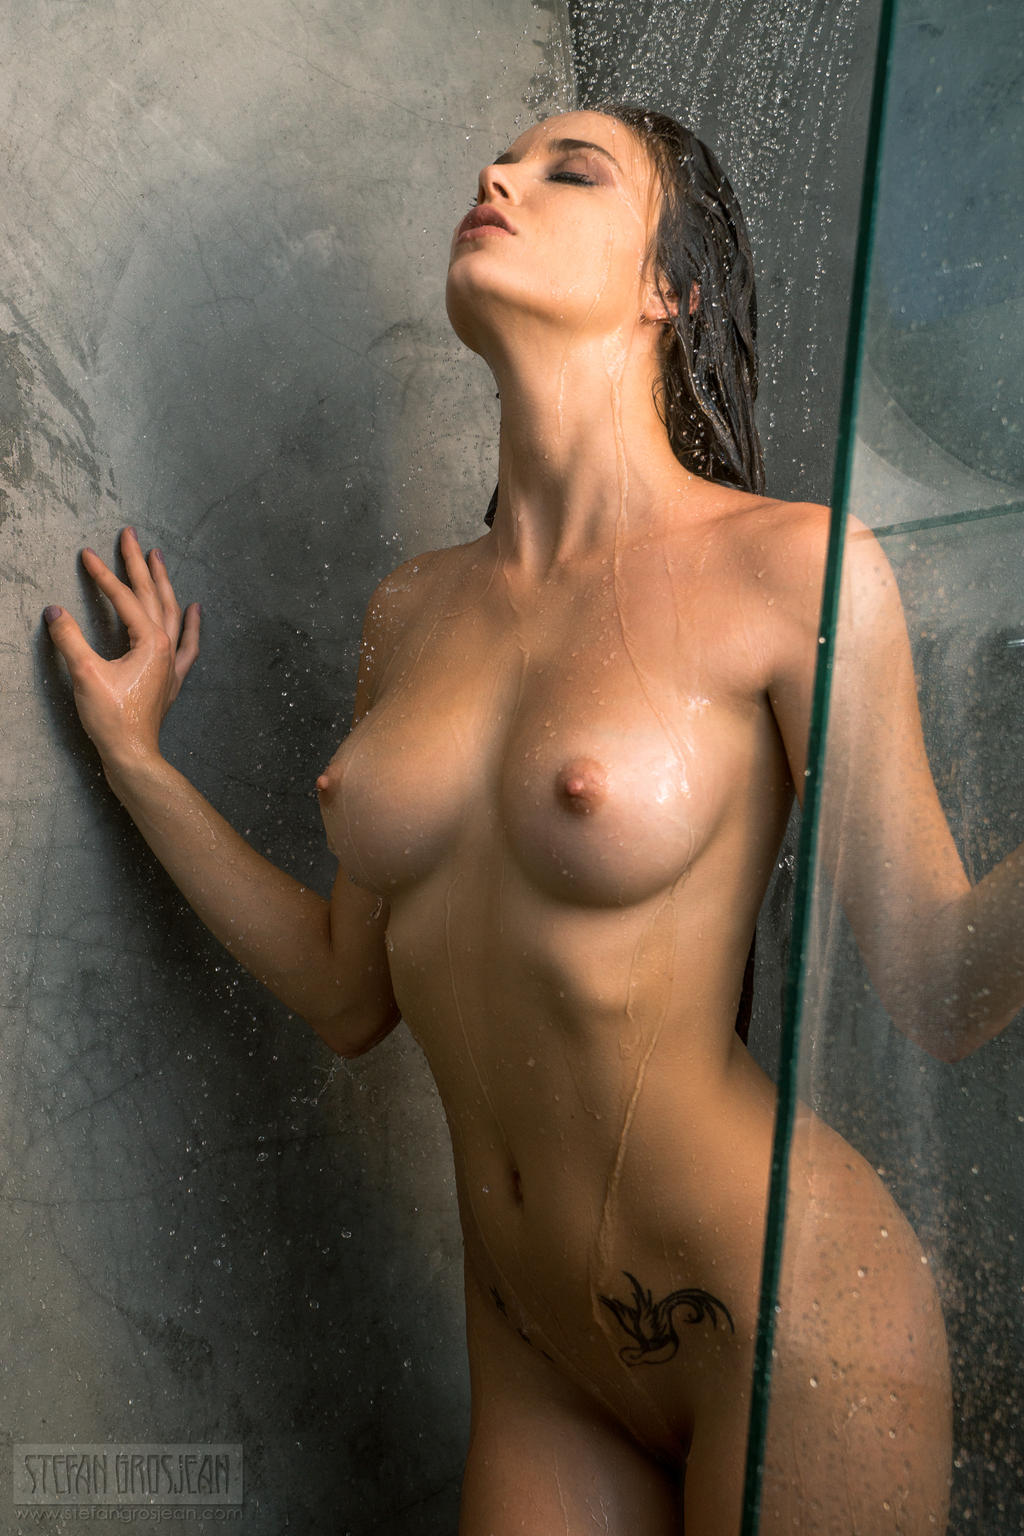 from Alfred most beautiful woman body naked